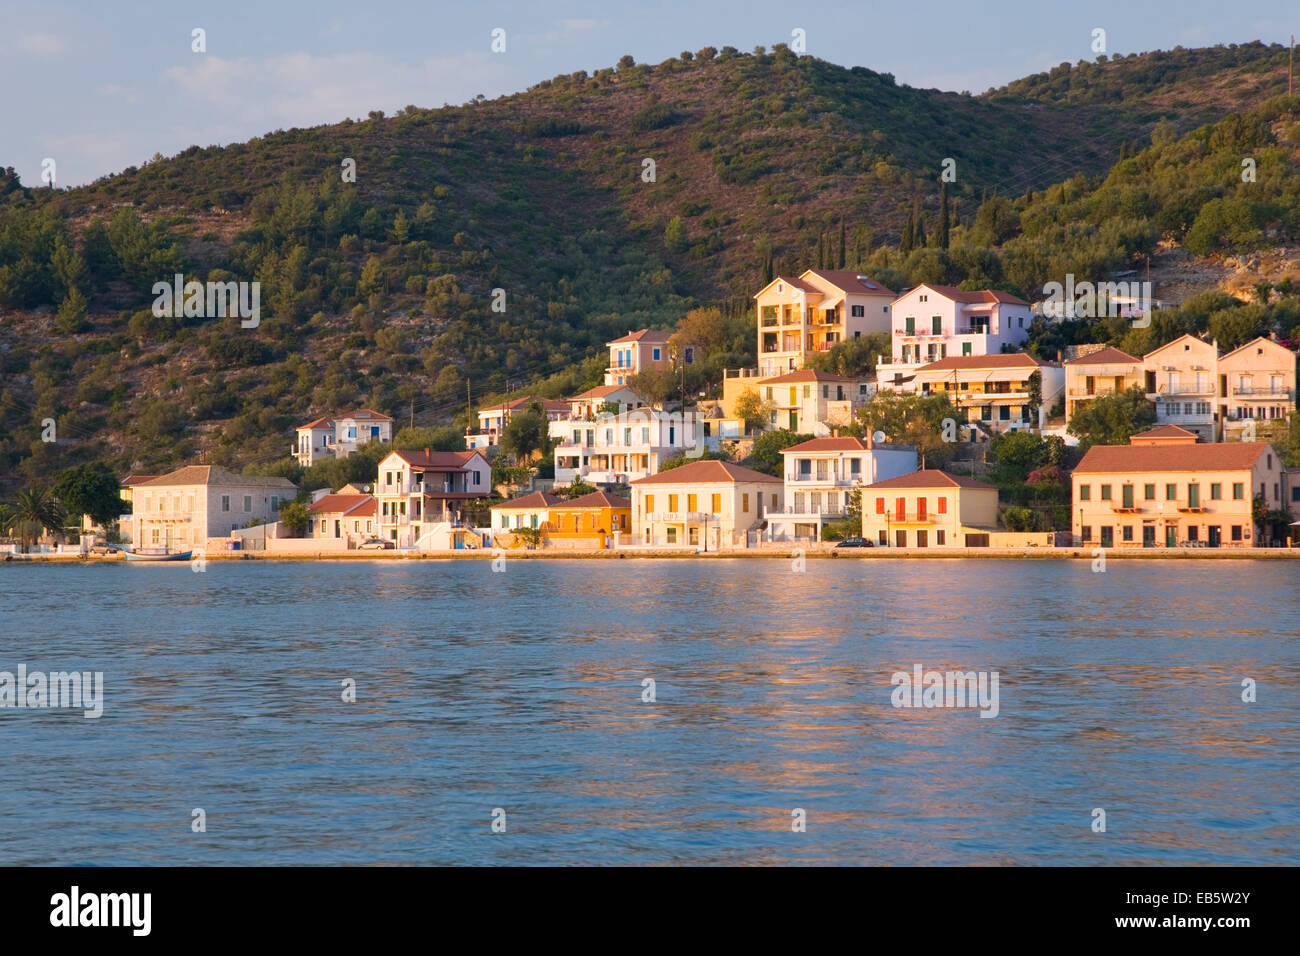 Vathy, Ithaca, Ionian Islands, Greece. View across the harbour to modern houses lit by the setting sun. - Stock Image